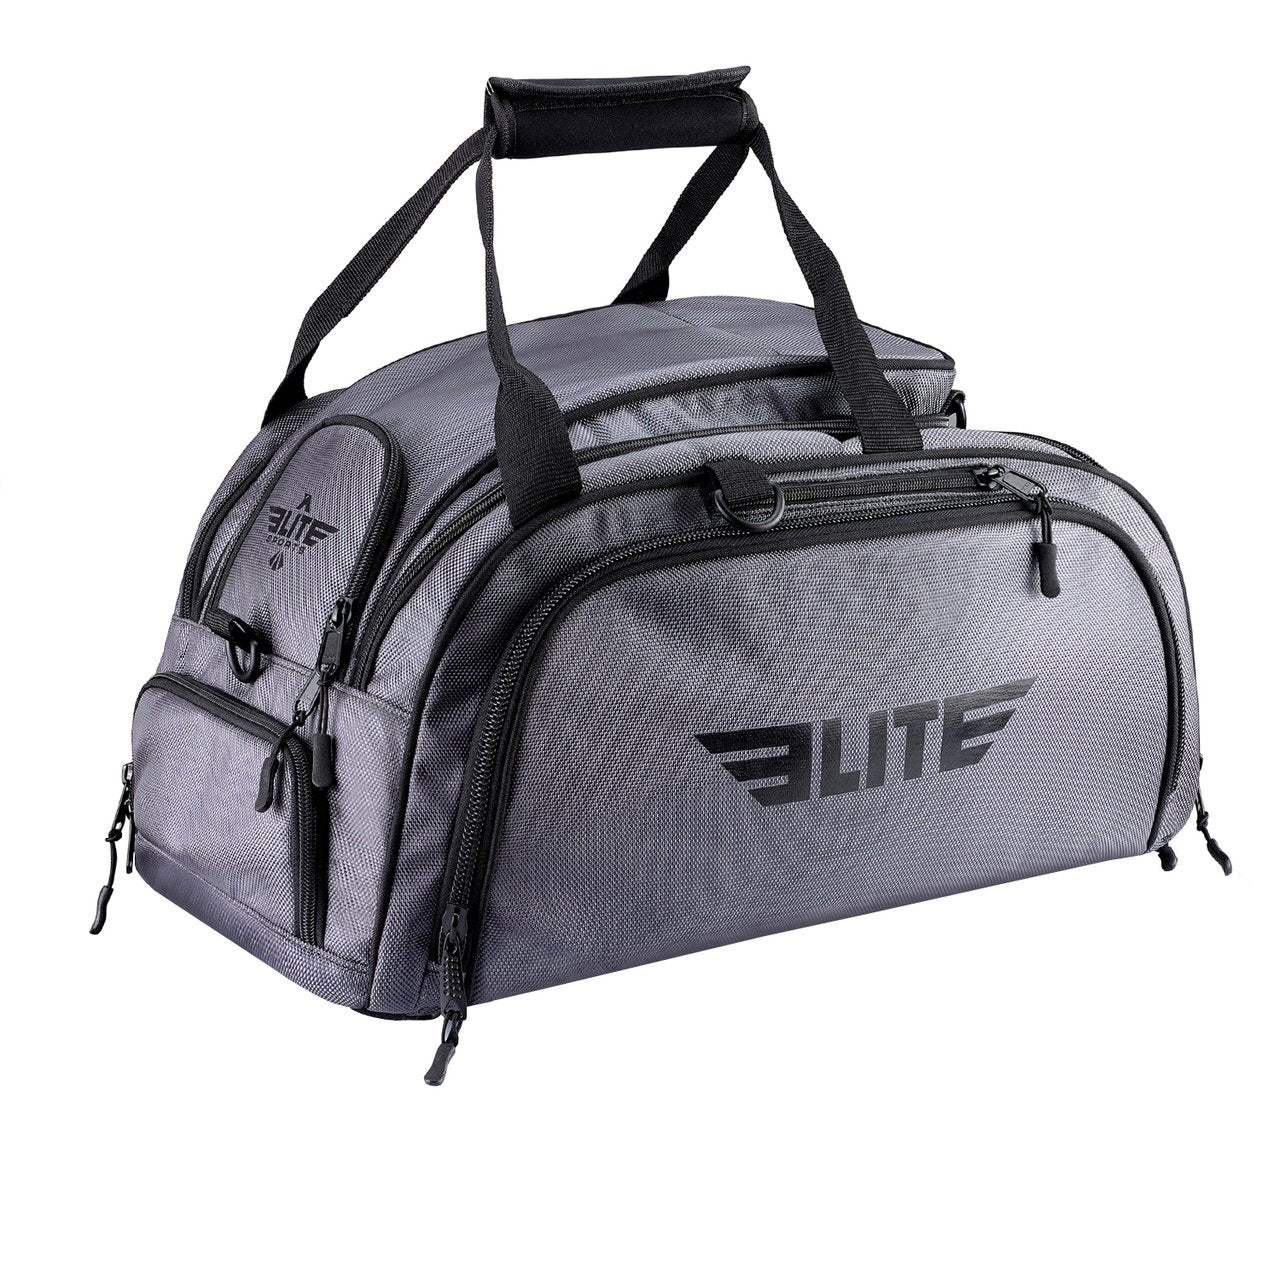 Load image into Gallery viewer, Elite Sports Warrior Series Gray Medium Duffel MMA Gear Gym Bag & Backpack